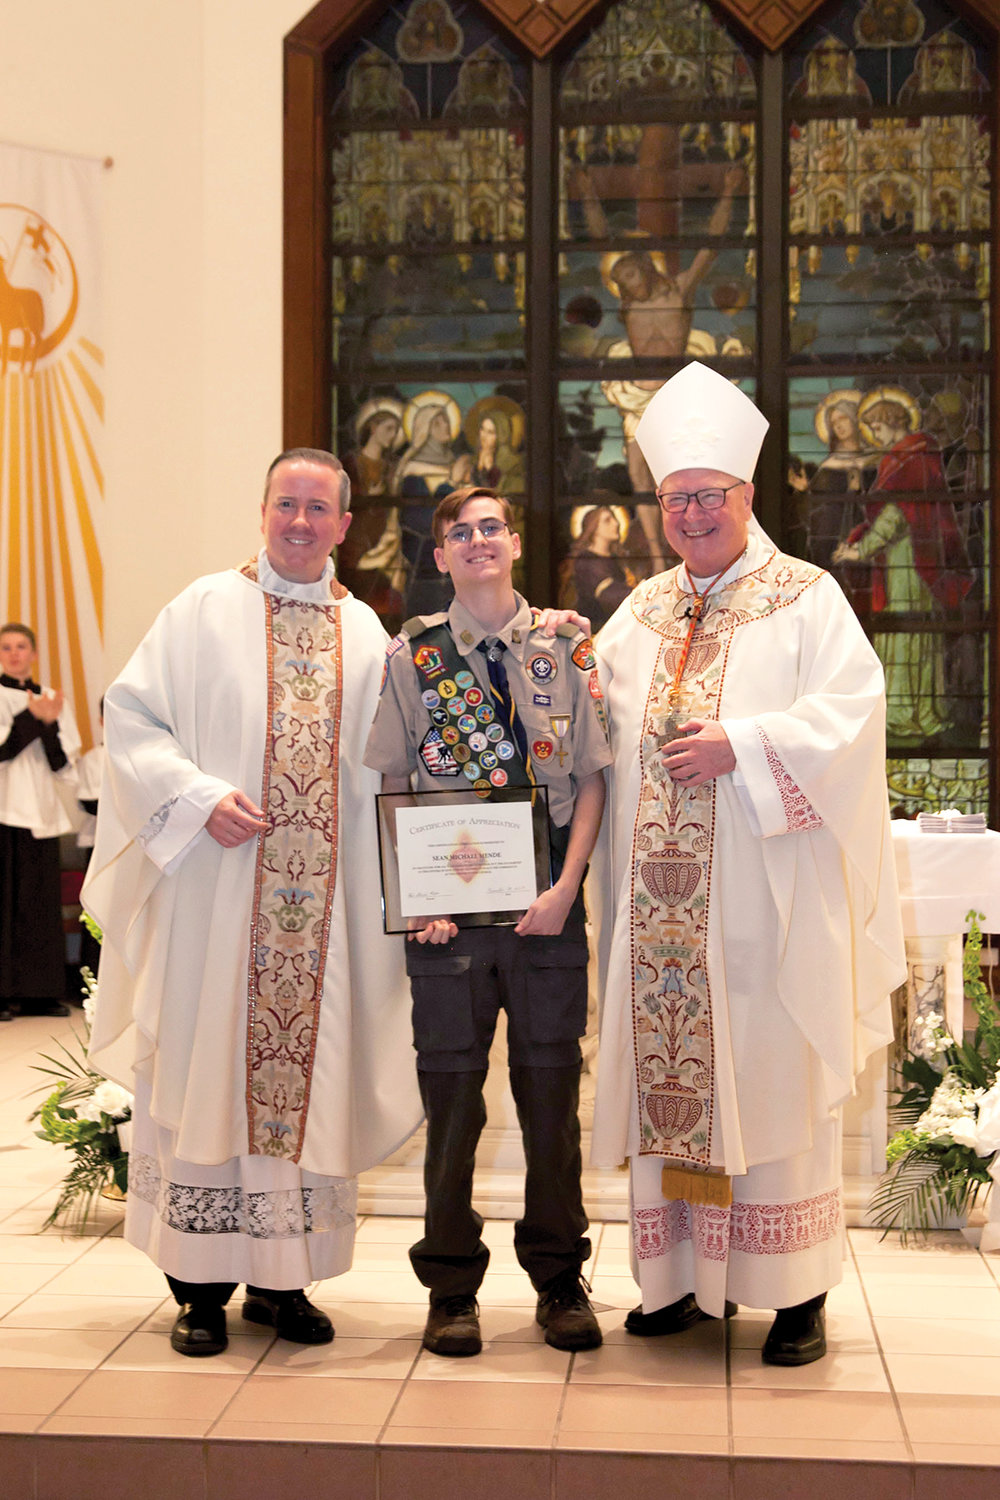 Sean Mende, 17, joins Father David Rider, parish administrator at Sacred Heart in Monroe, and Cardinal Dolan after the Nov. 24 Mass celebrating the Feast of Christ the King and recognizing the transfer of the tabernacle that served as Sean's Eagle Scout project. Sean is holding a certificate of appreciation from the parish.